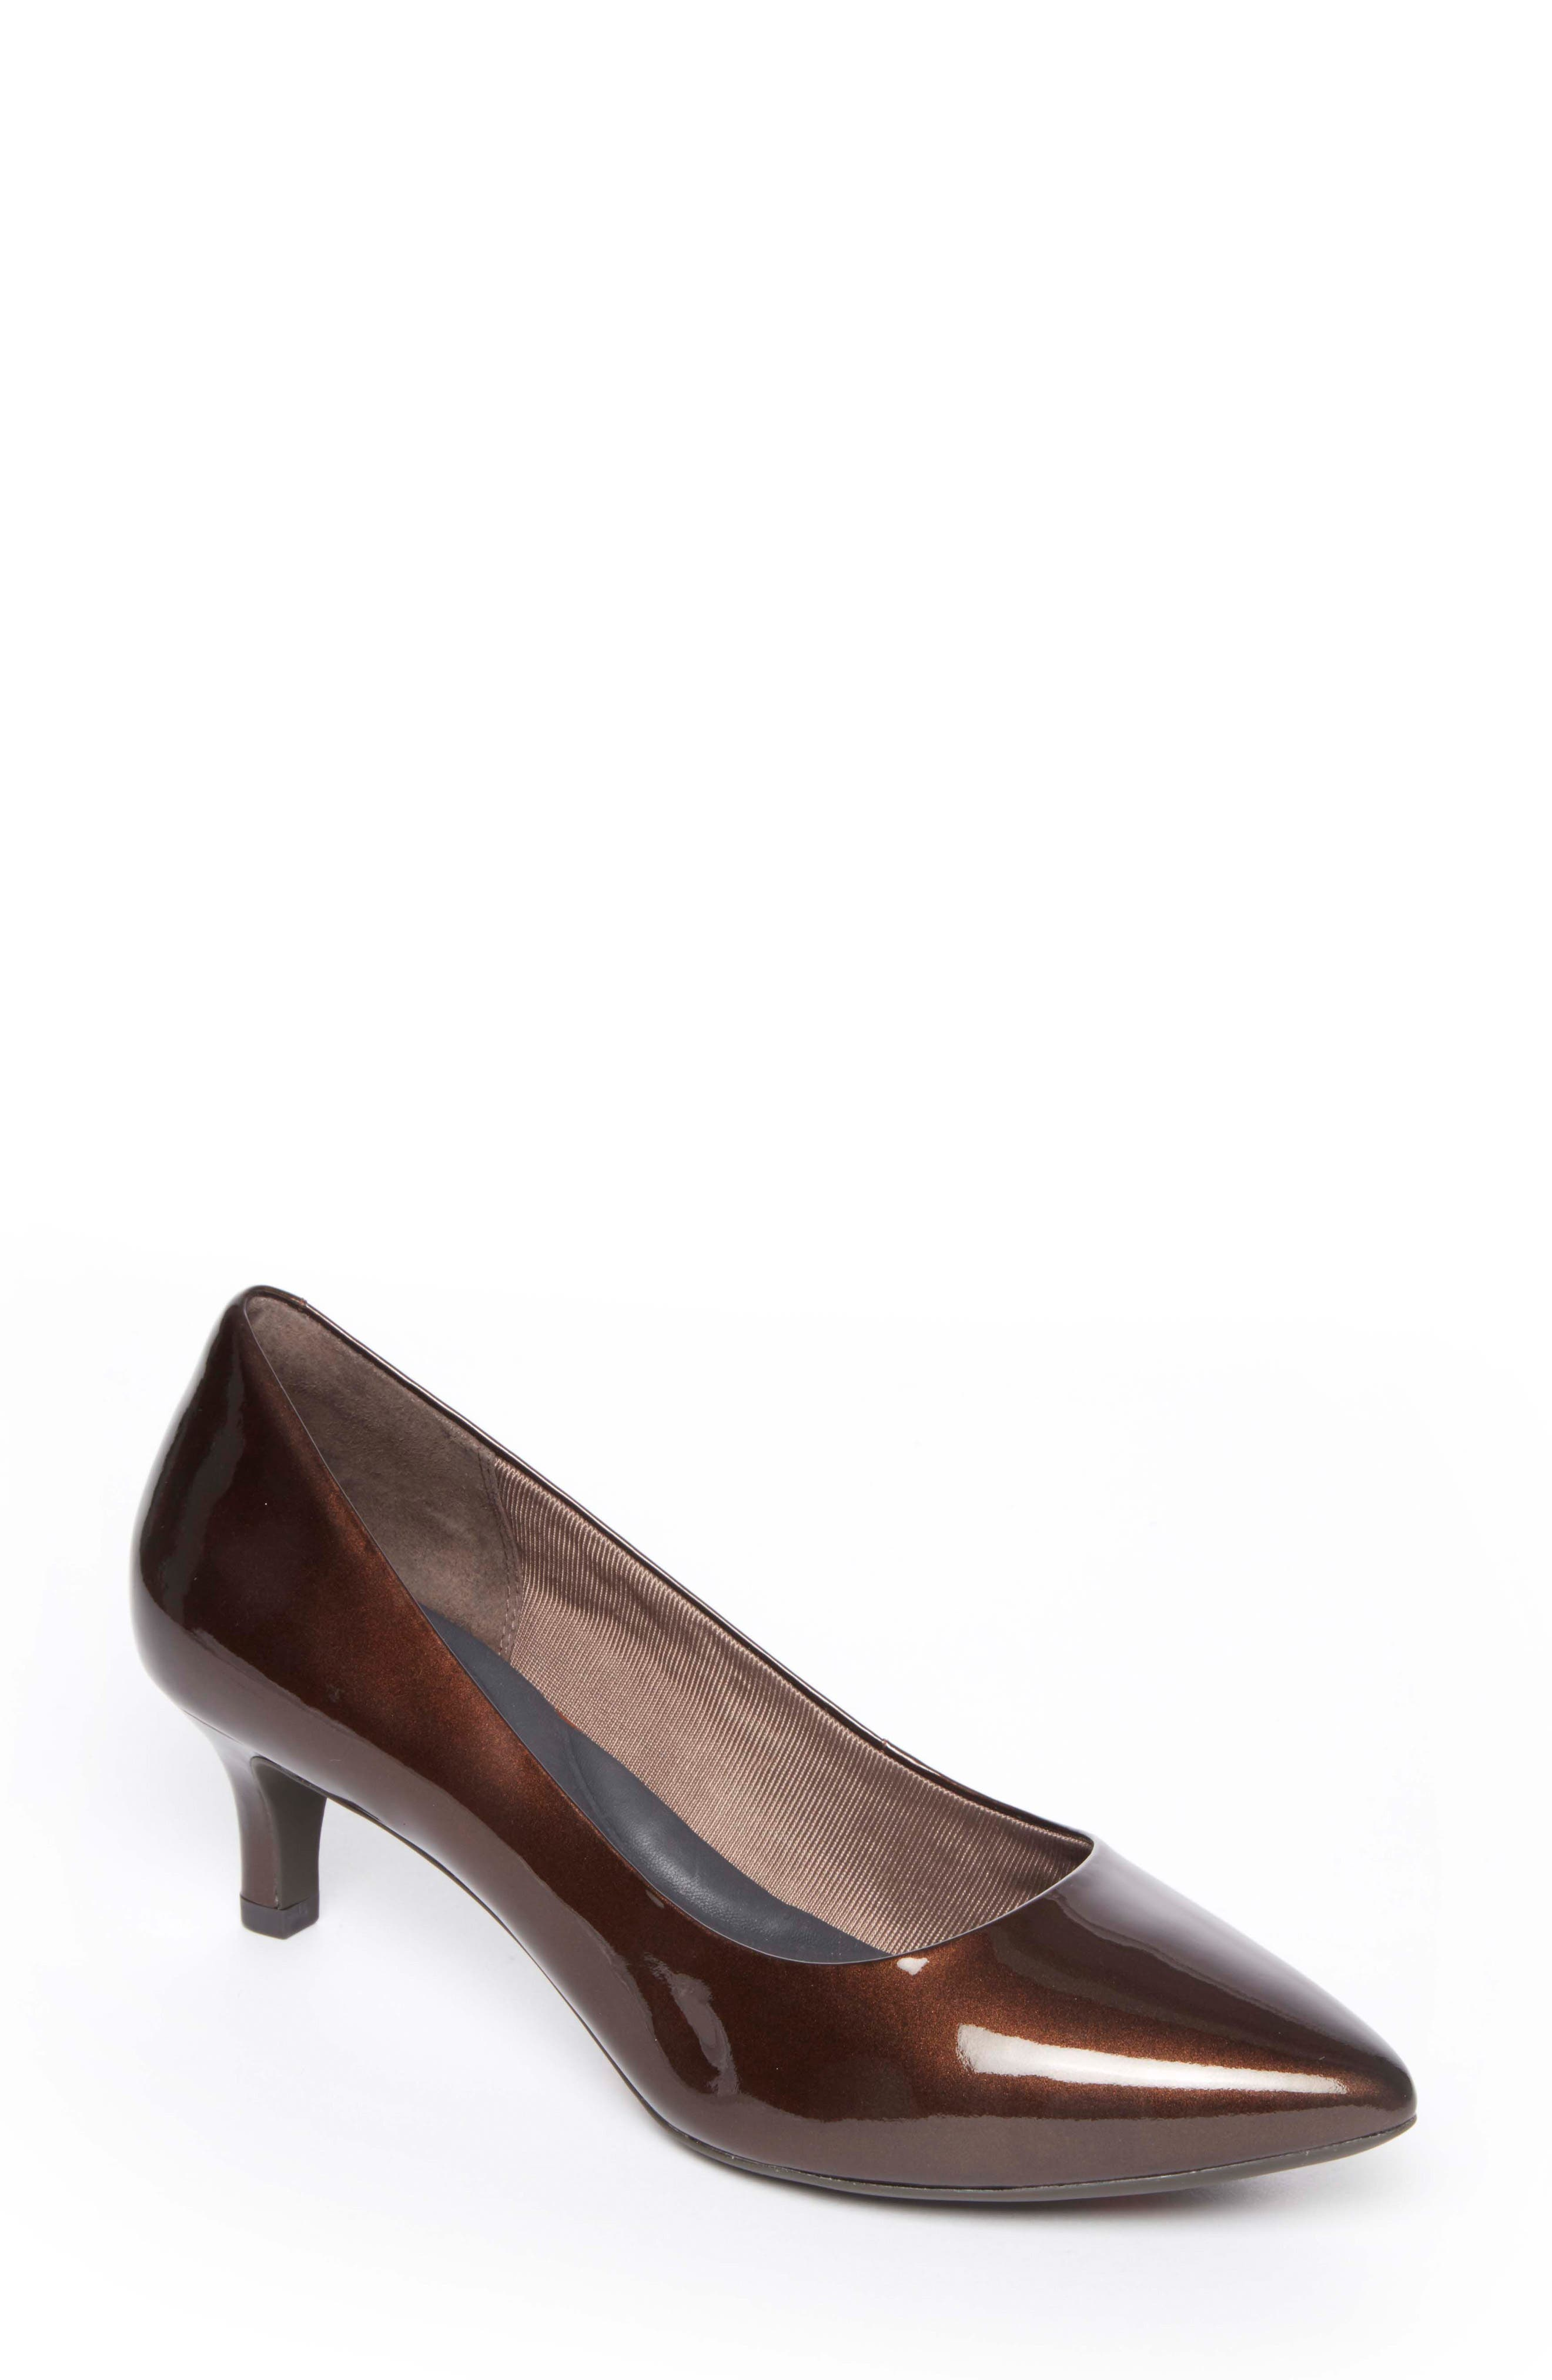 Rockport Kalila Luxe Pump W - Brown